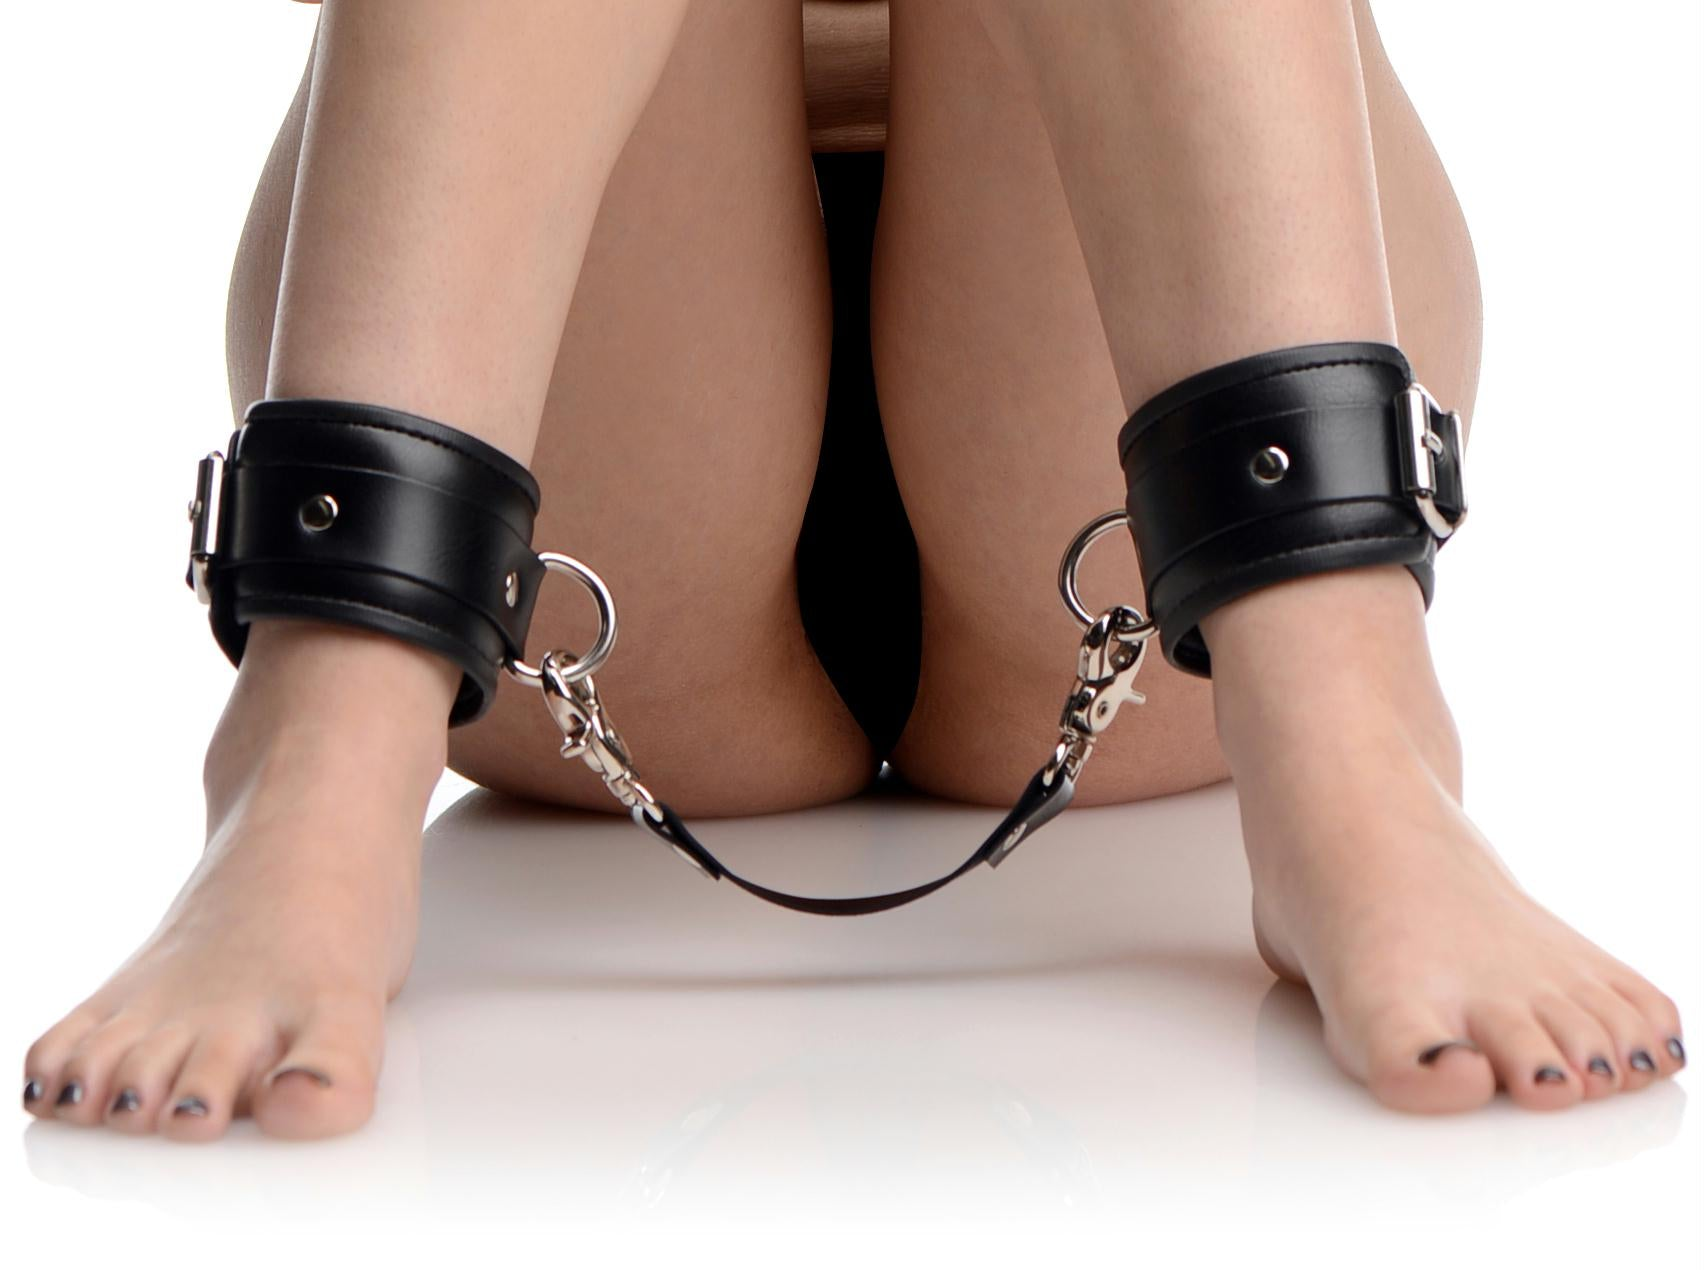 Strap Linked Bondage Cuffs